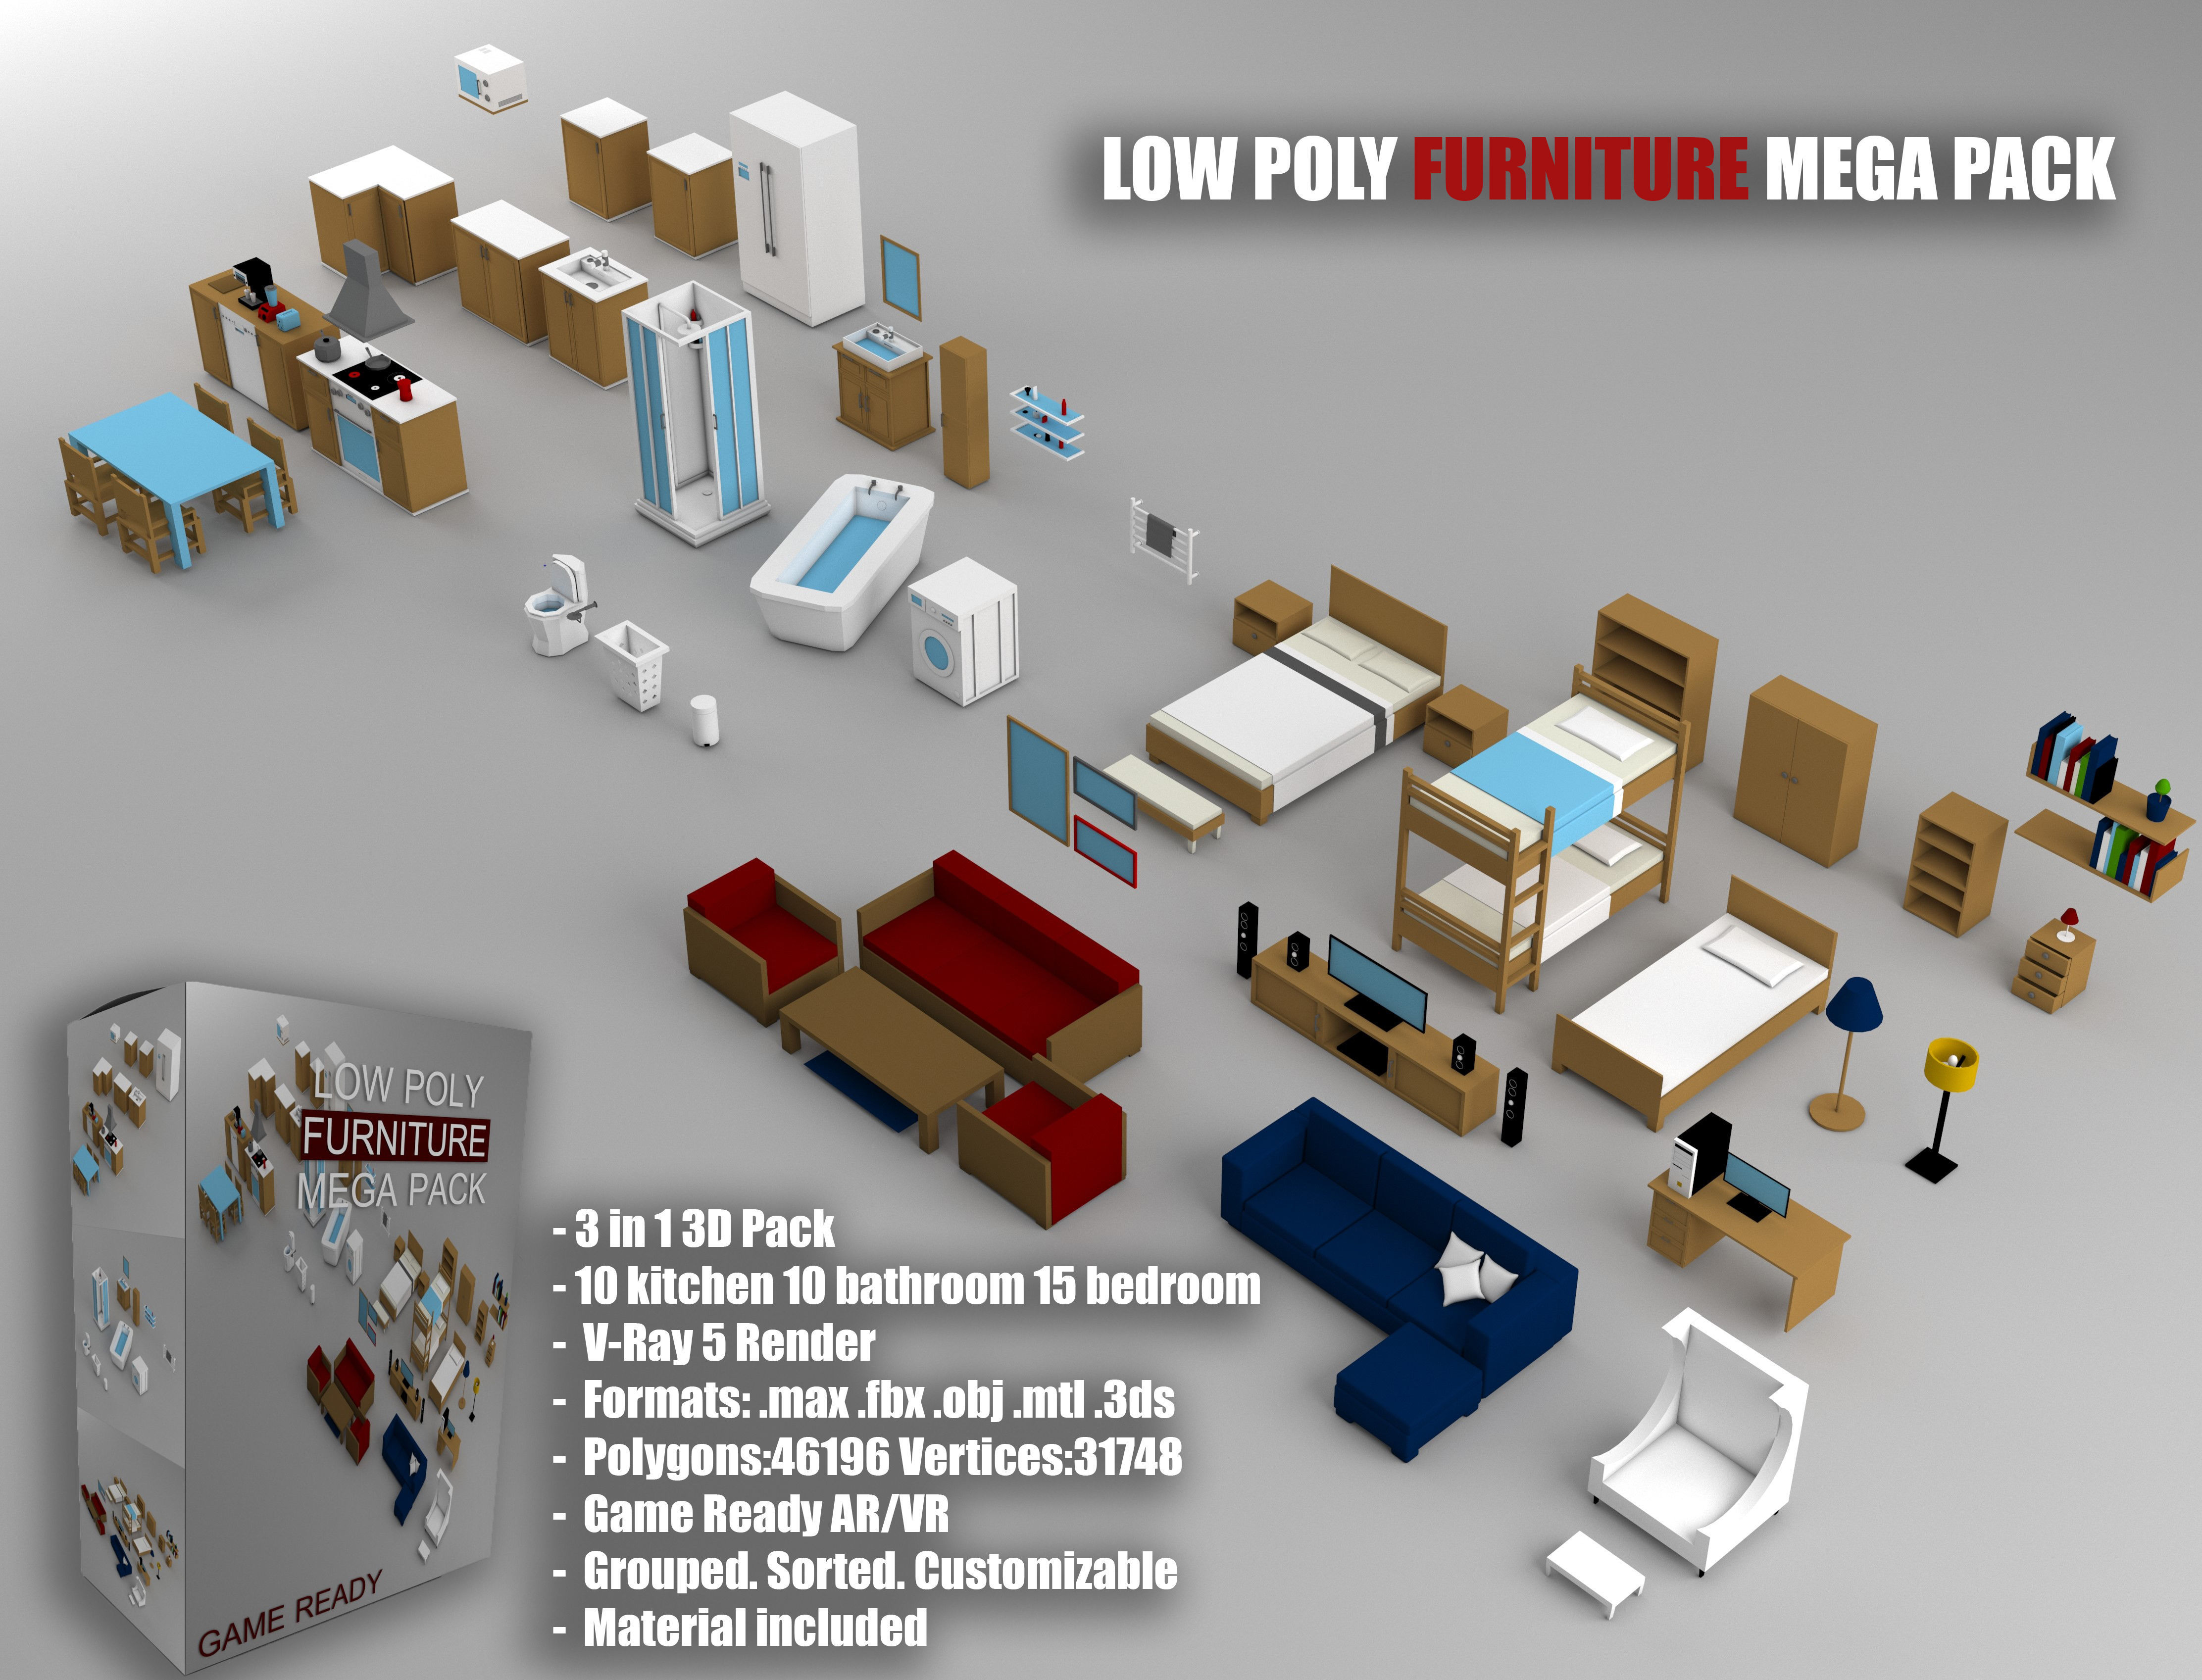 Low-Poly Furniture Mega Pack - Game Ready